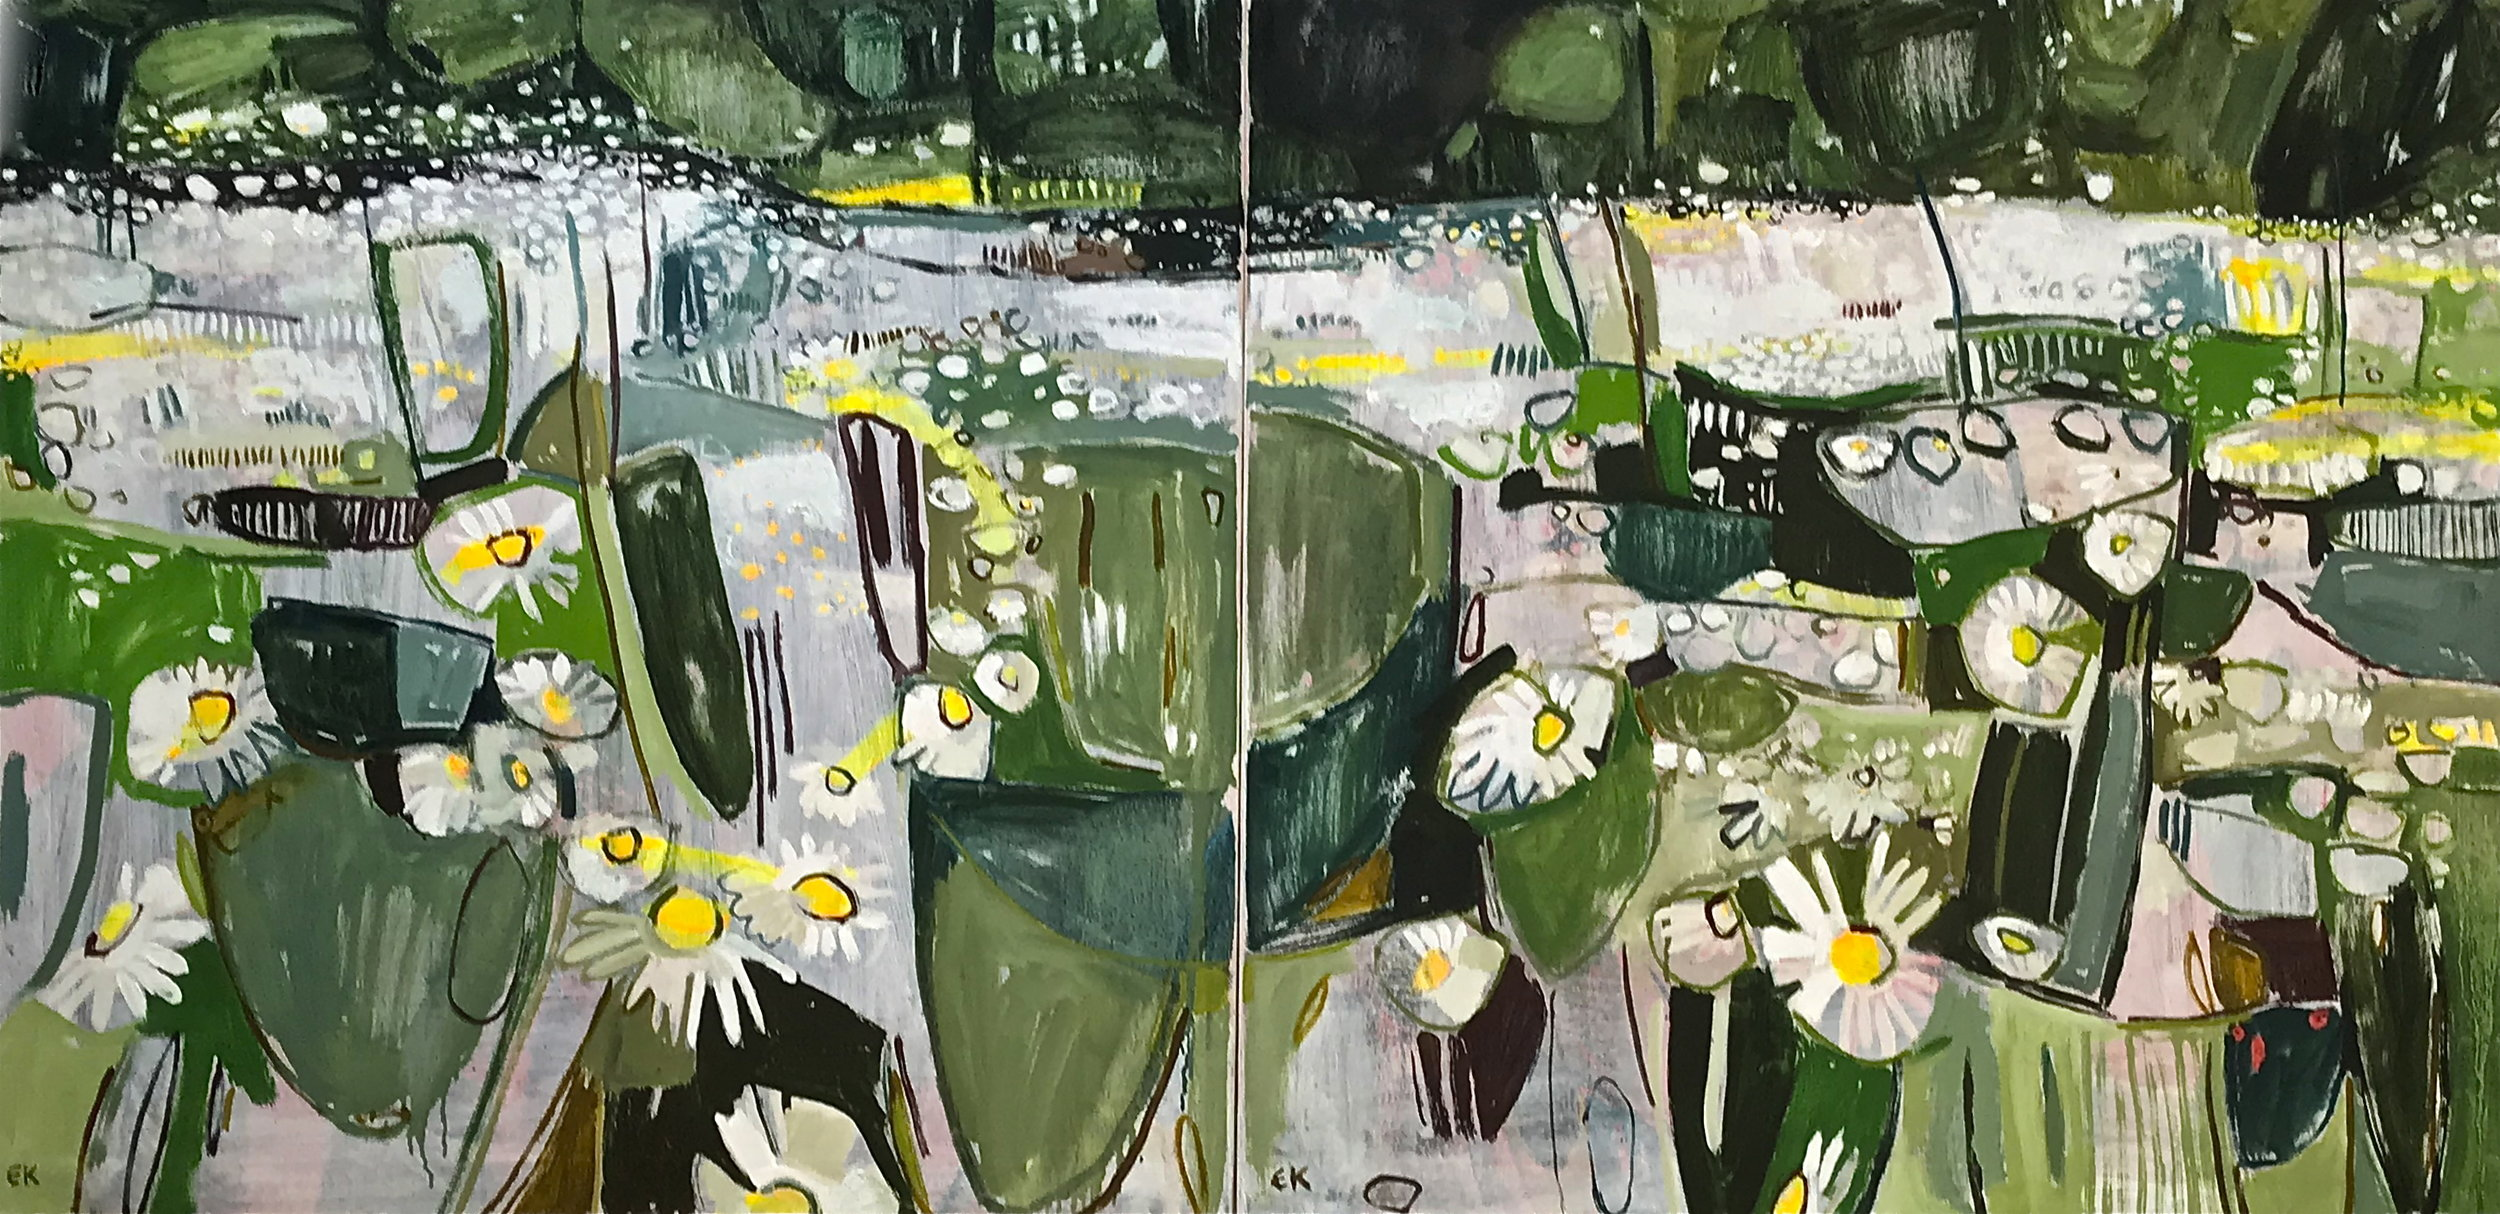 Diptych: A Good Year for Penny Daisies, available individually